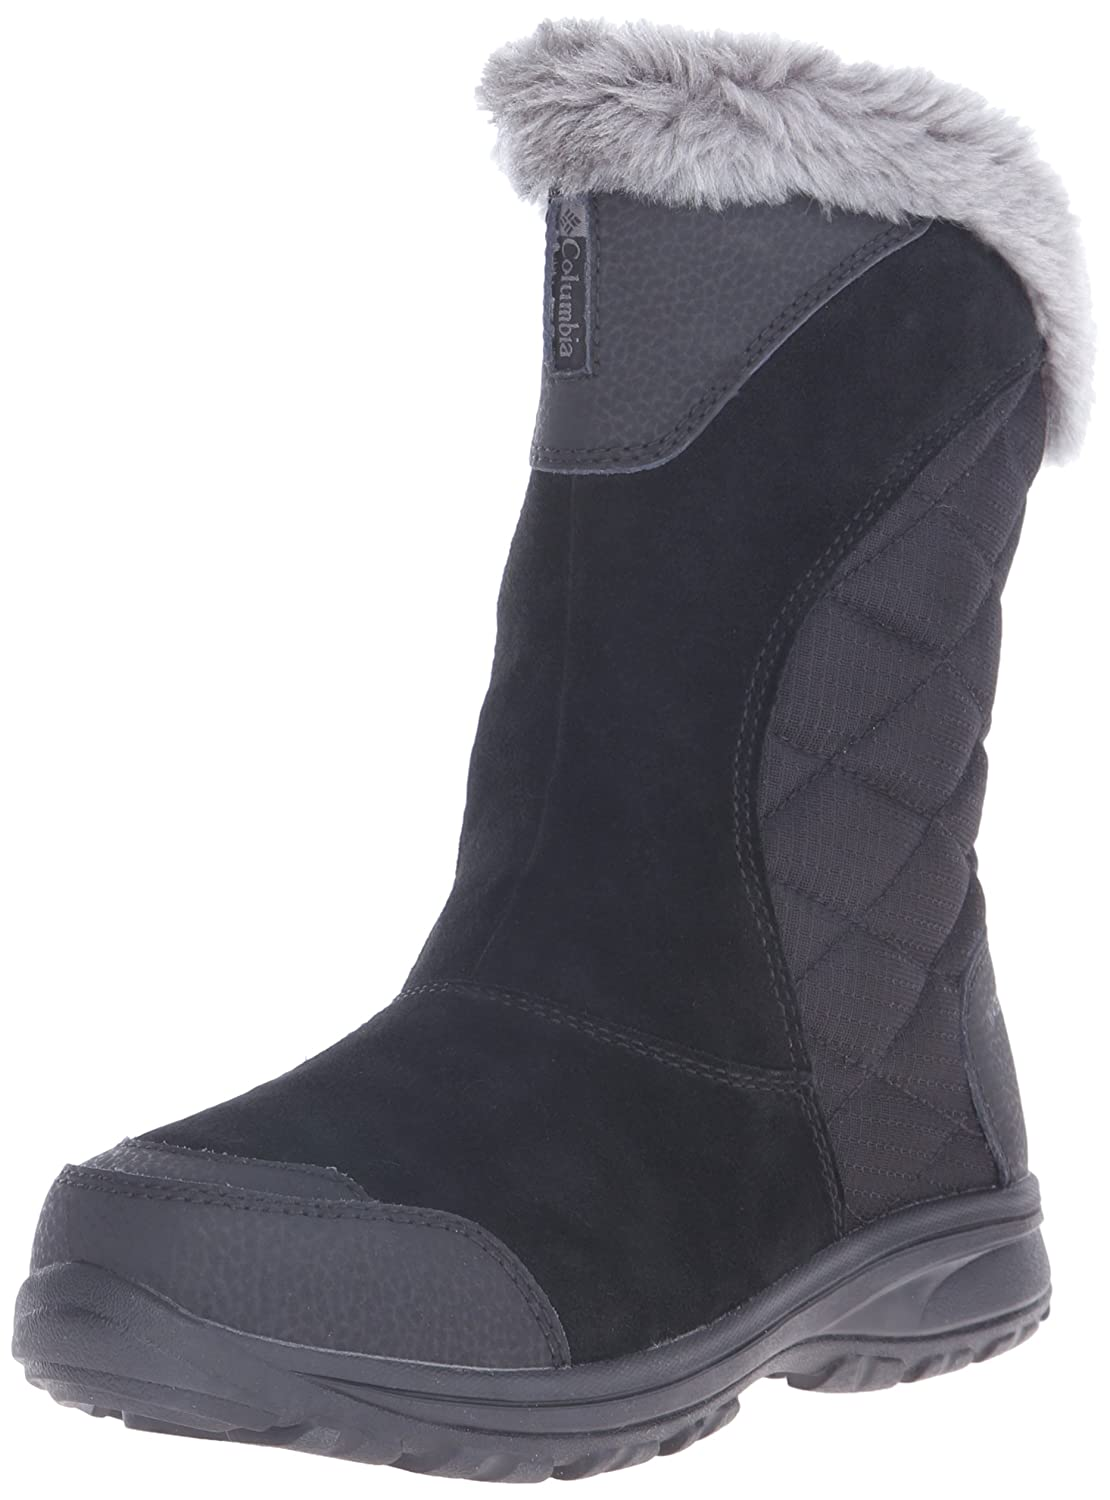 Columbia Women's Ice Maiden II Slip Winter Boot B00GW97FVA 9.5 B(M) US|Black, Shale